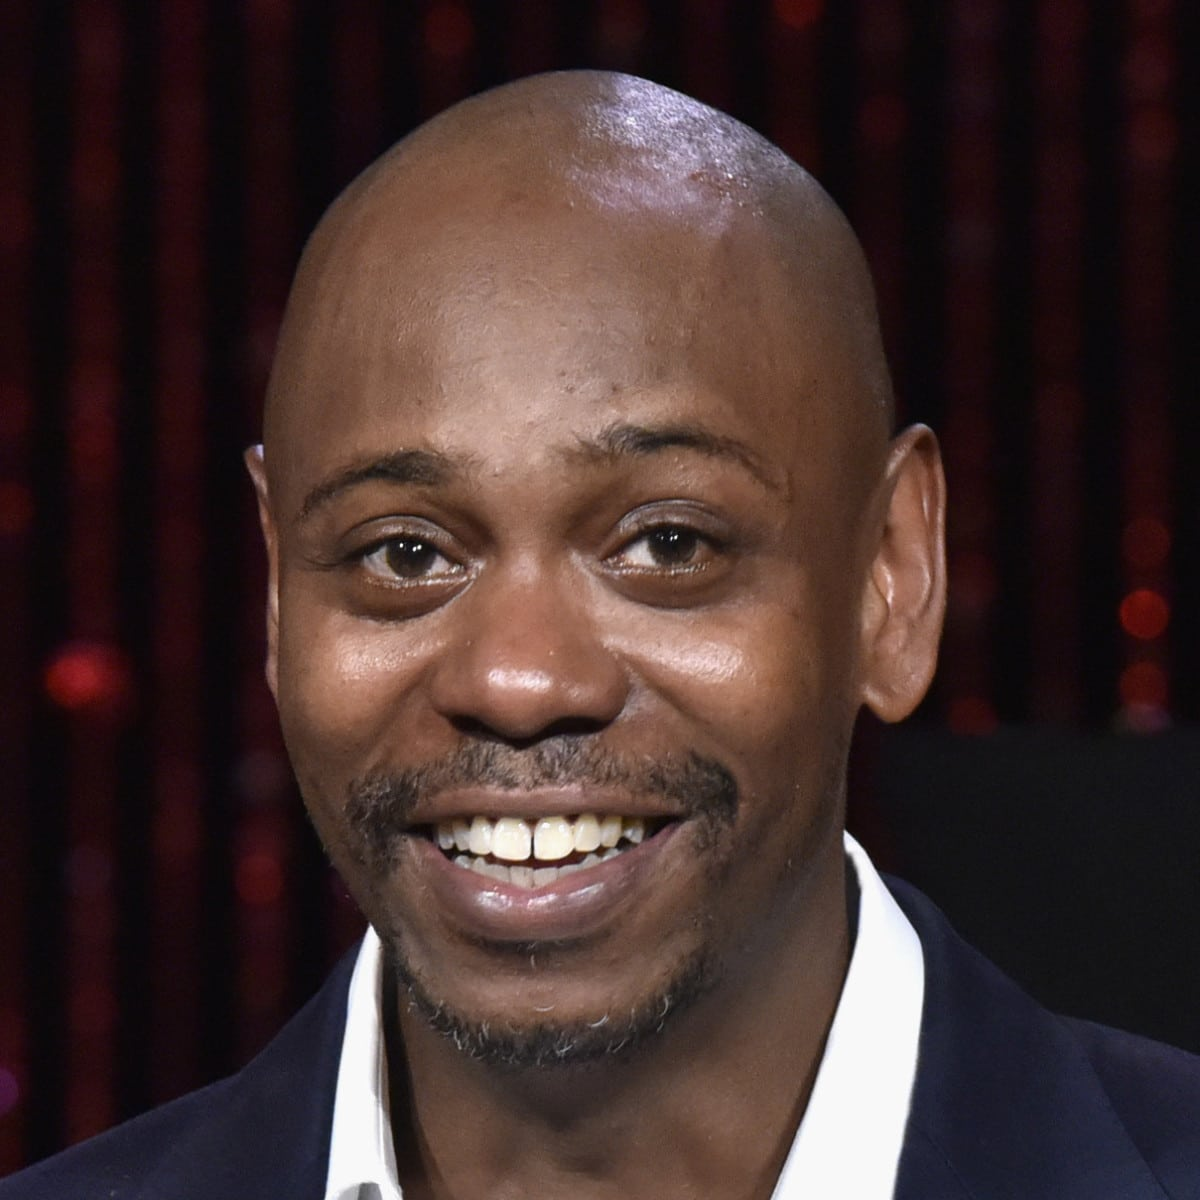 Dave Chappelle American Comedian, actor, writer, producer